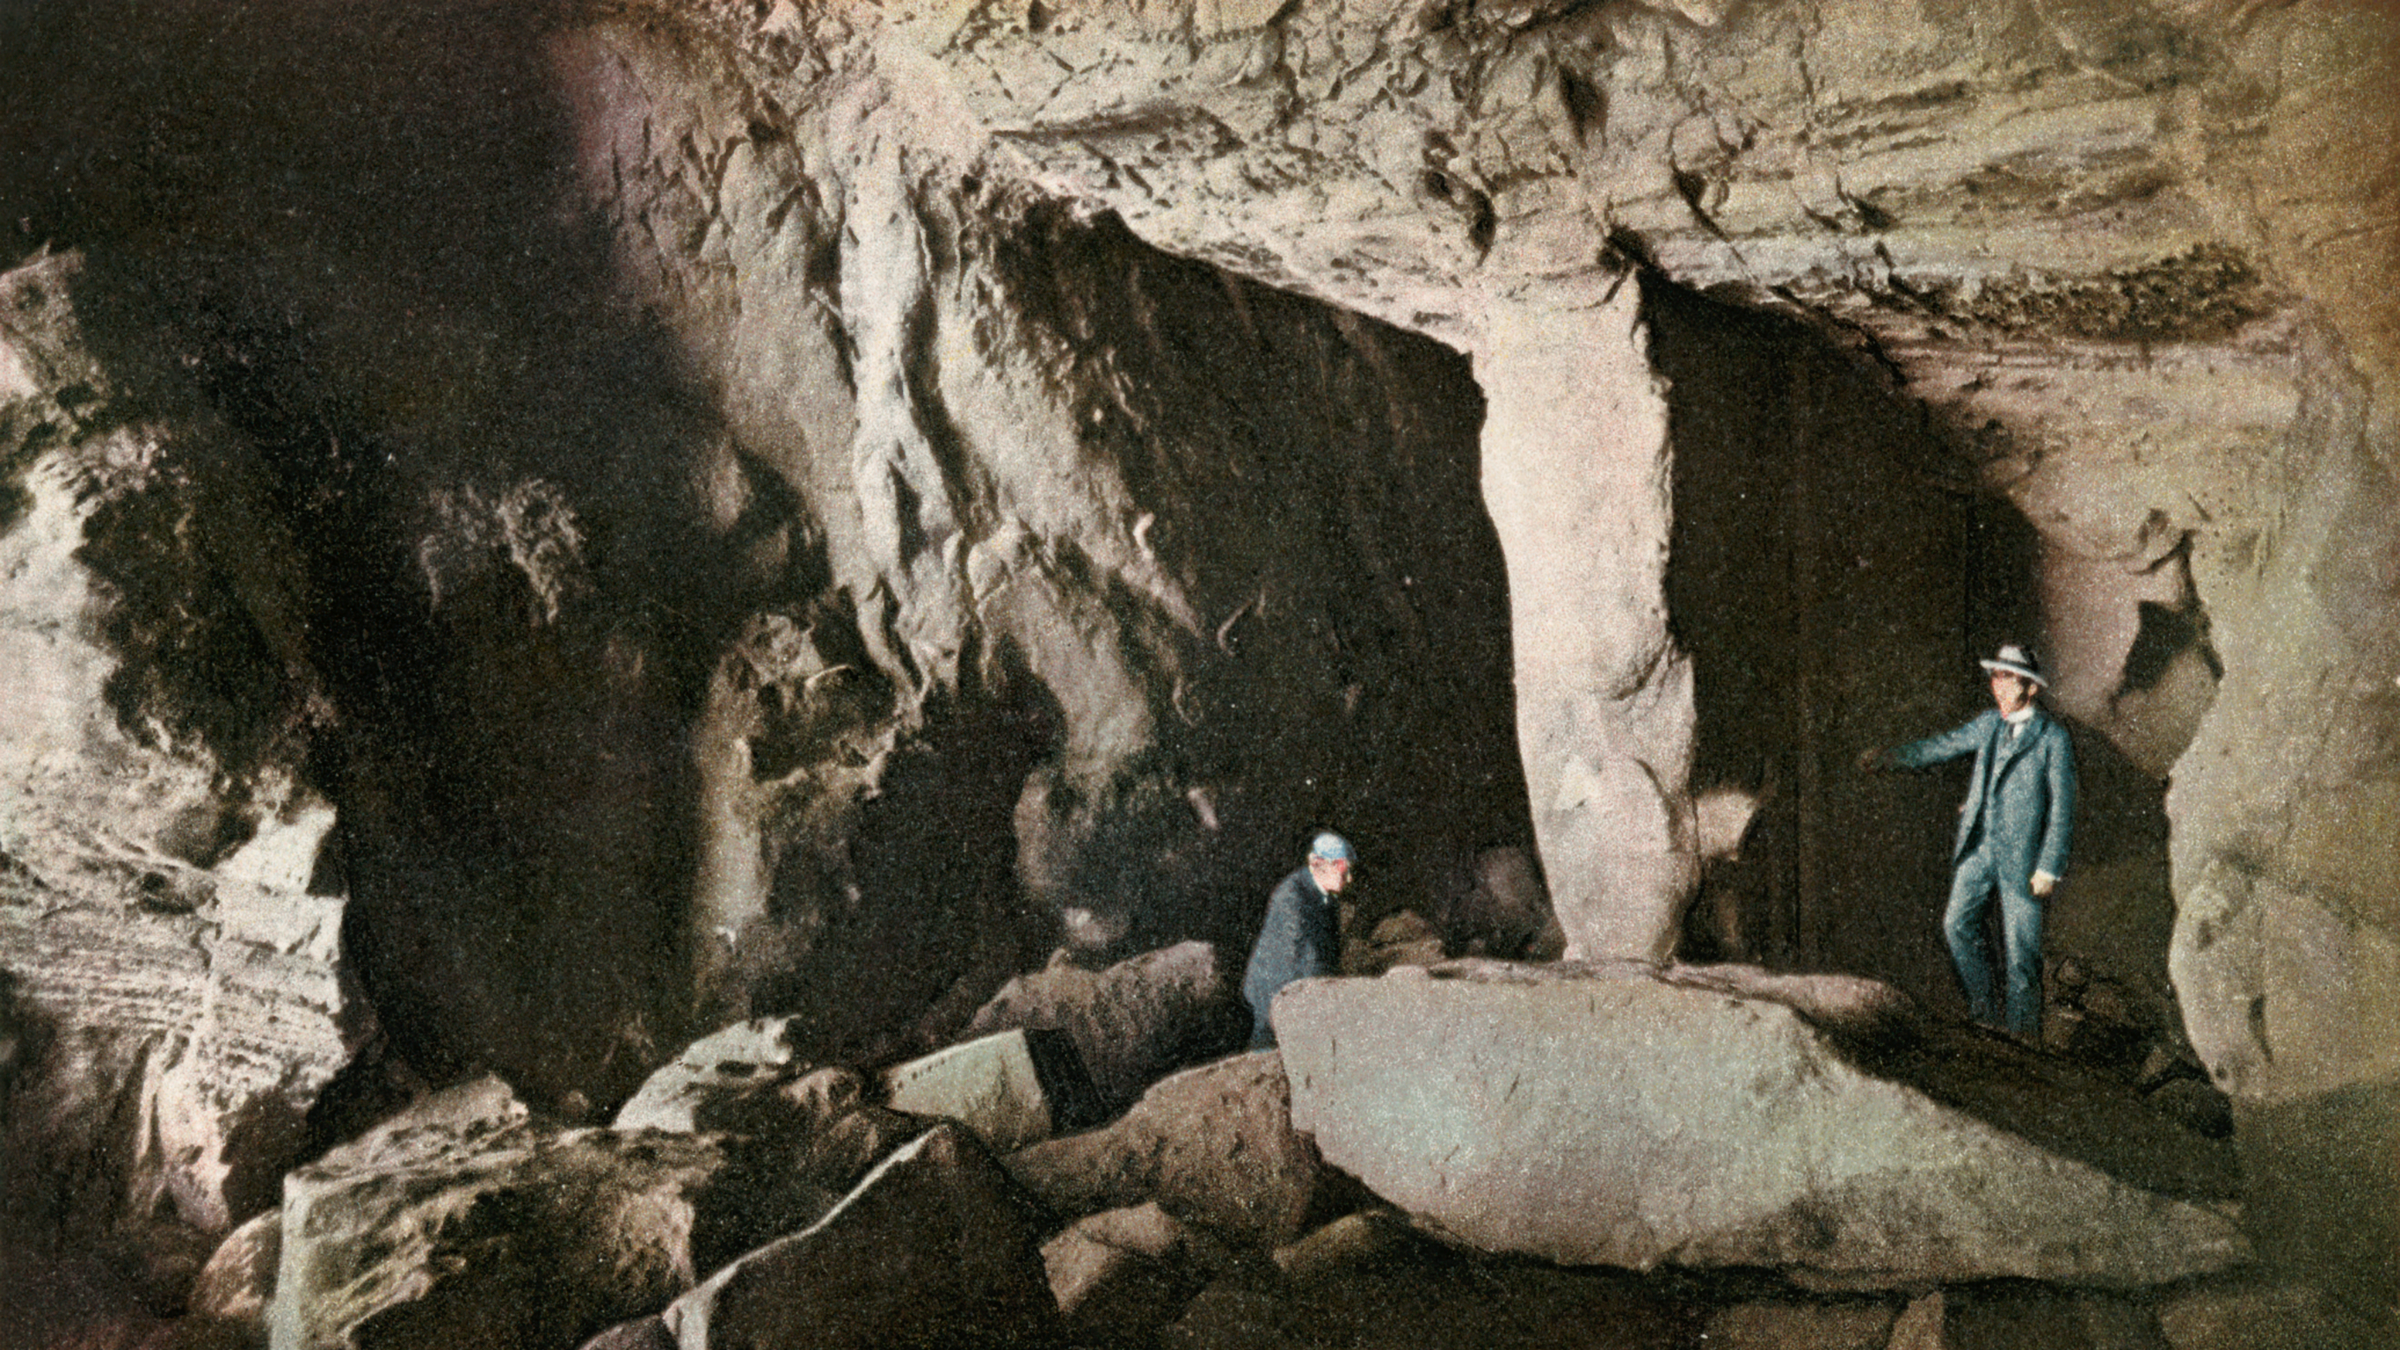 Spelunking for Truth in a Disillusioned Era - The Jefferson Watch